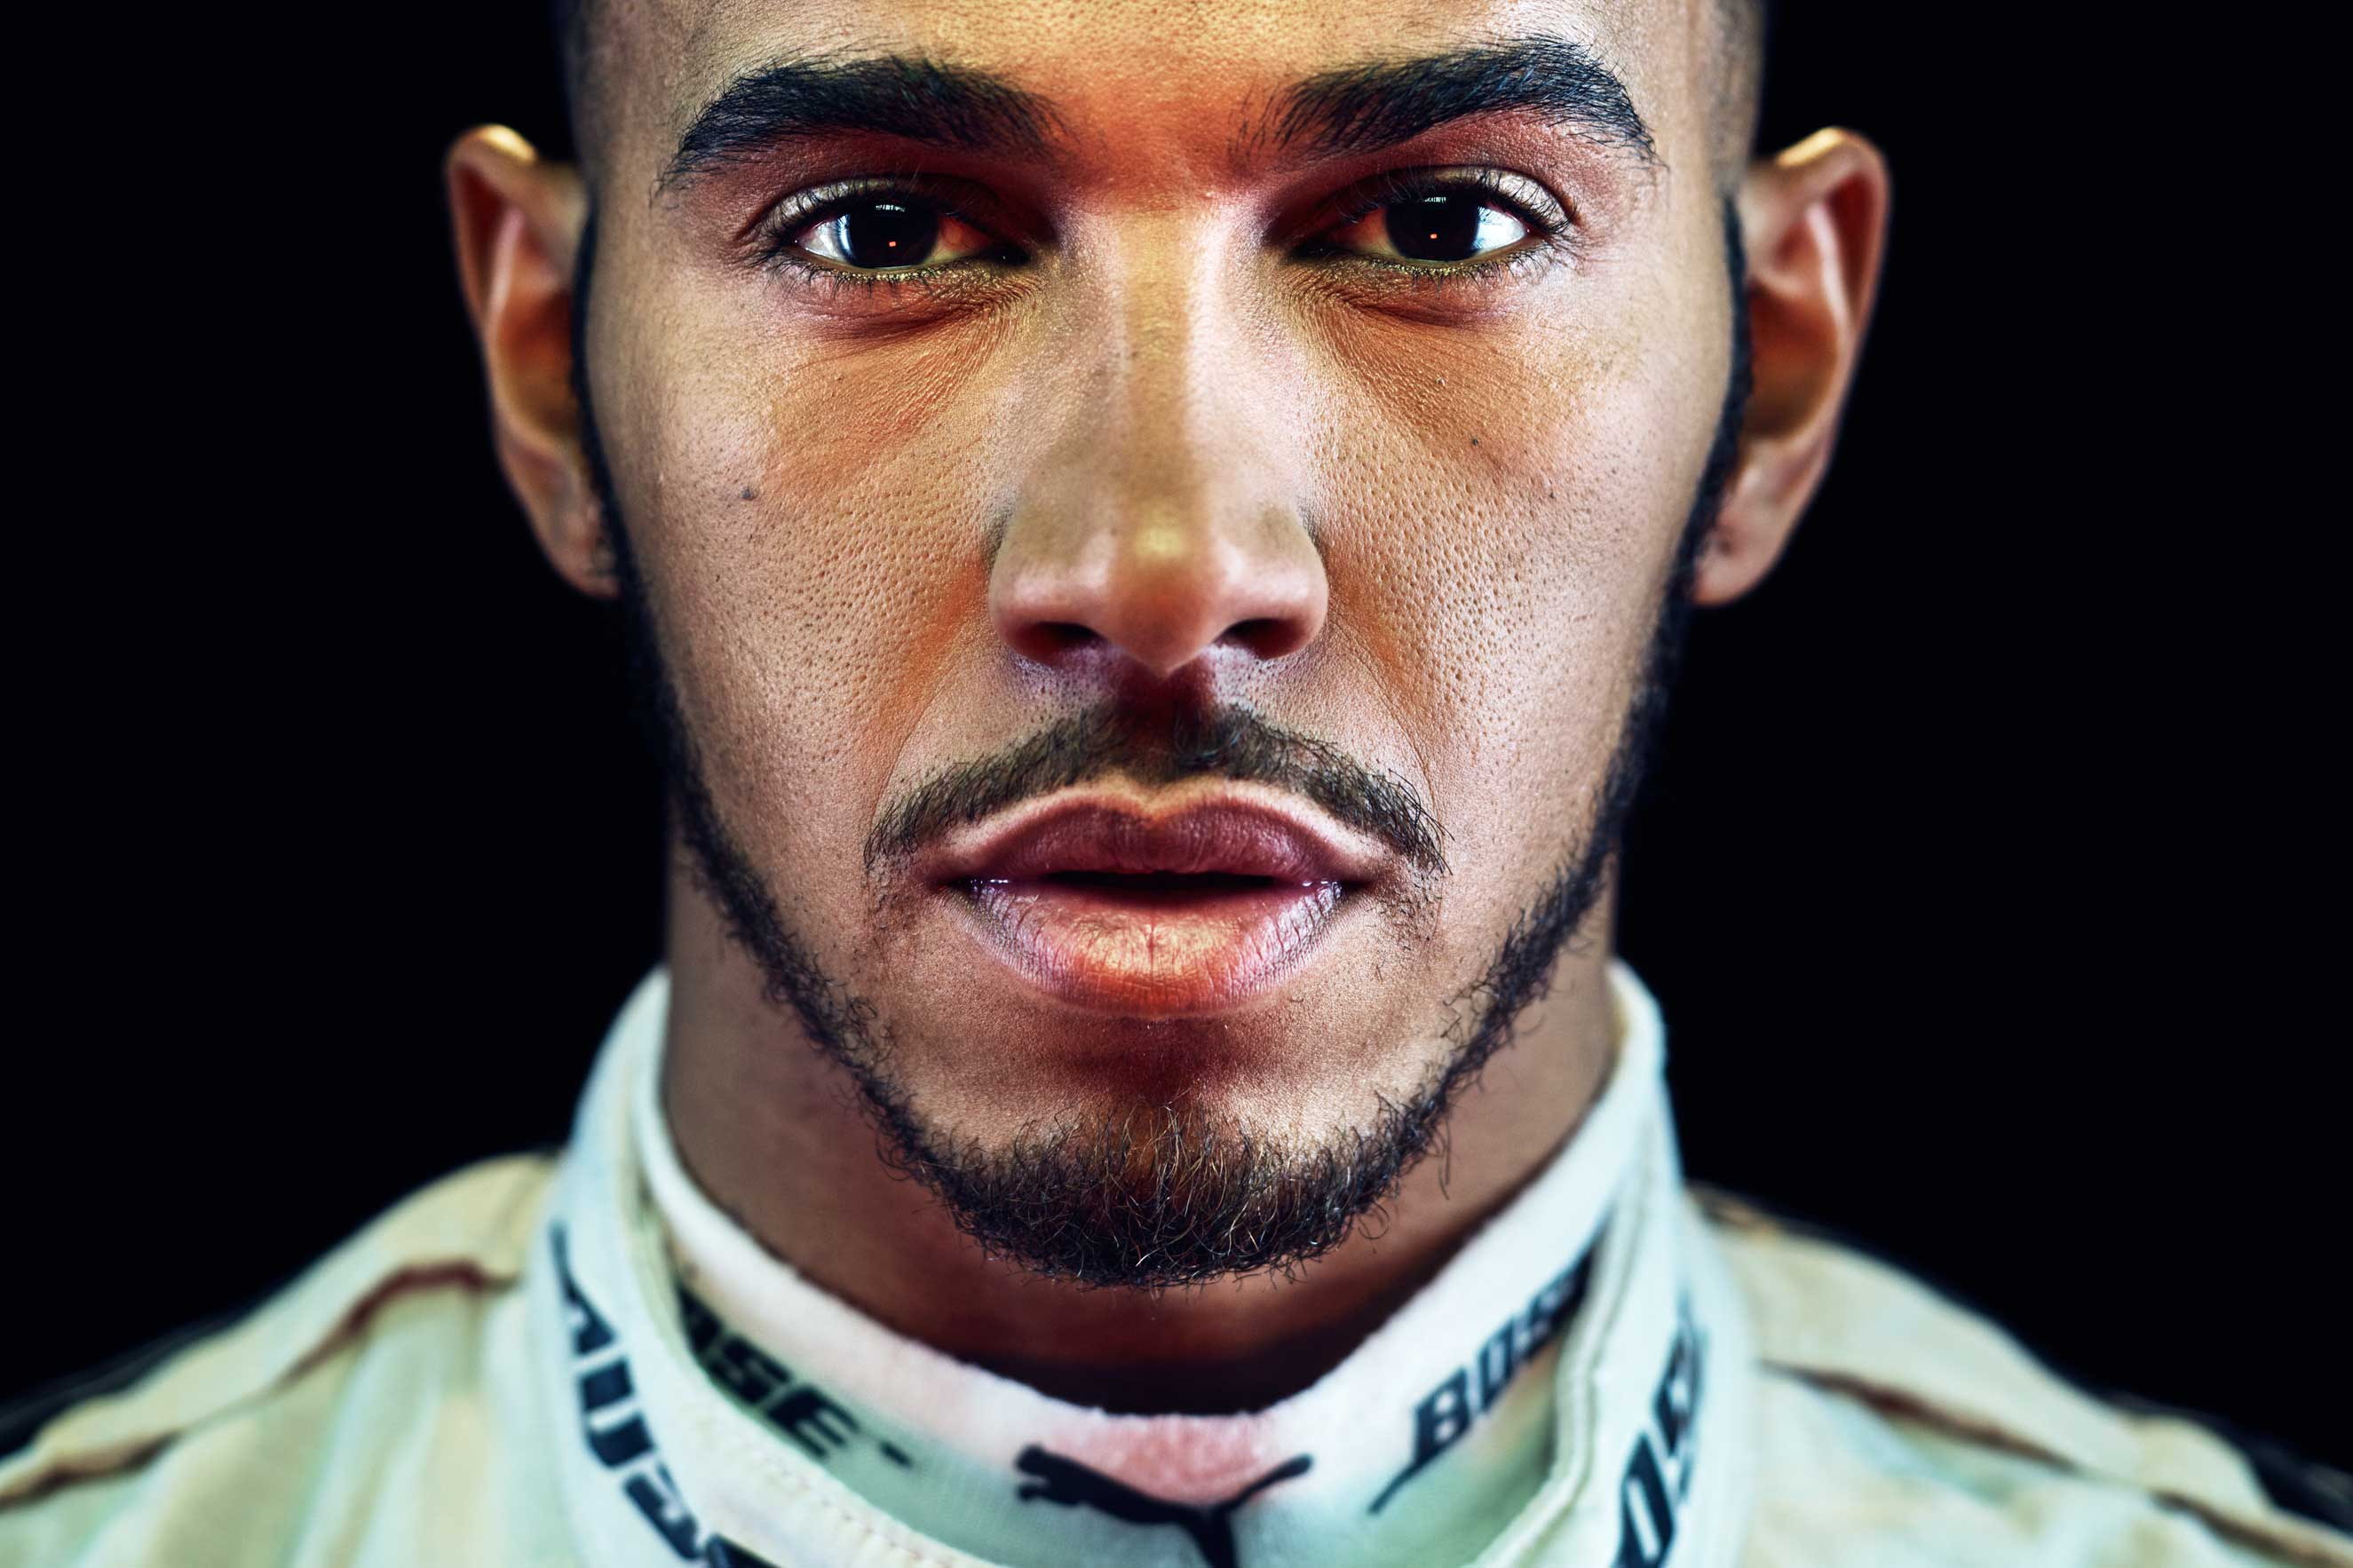 British Formula One racing driver Lewis Hamilton poses for a portrait at the TIME photo studio in New York City on Tuesday, Nov 1, 2016.